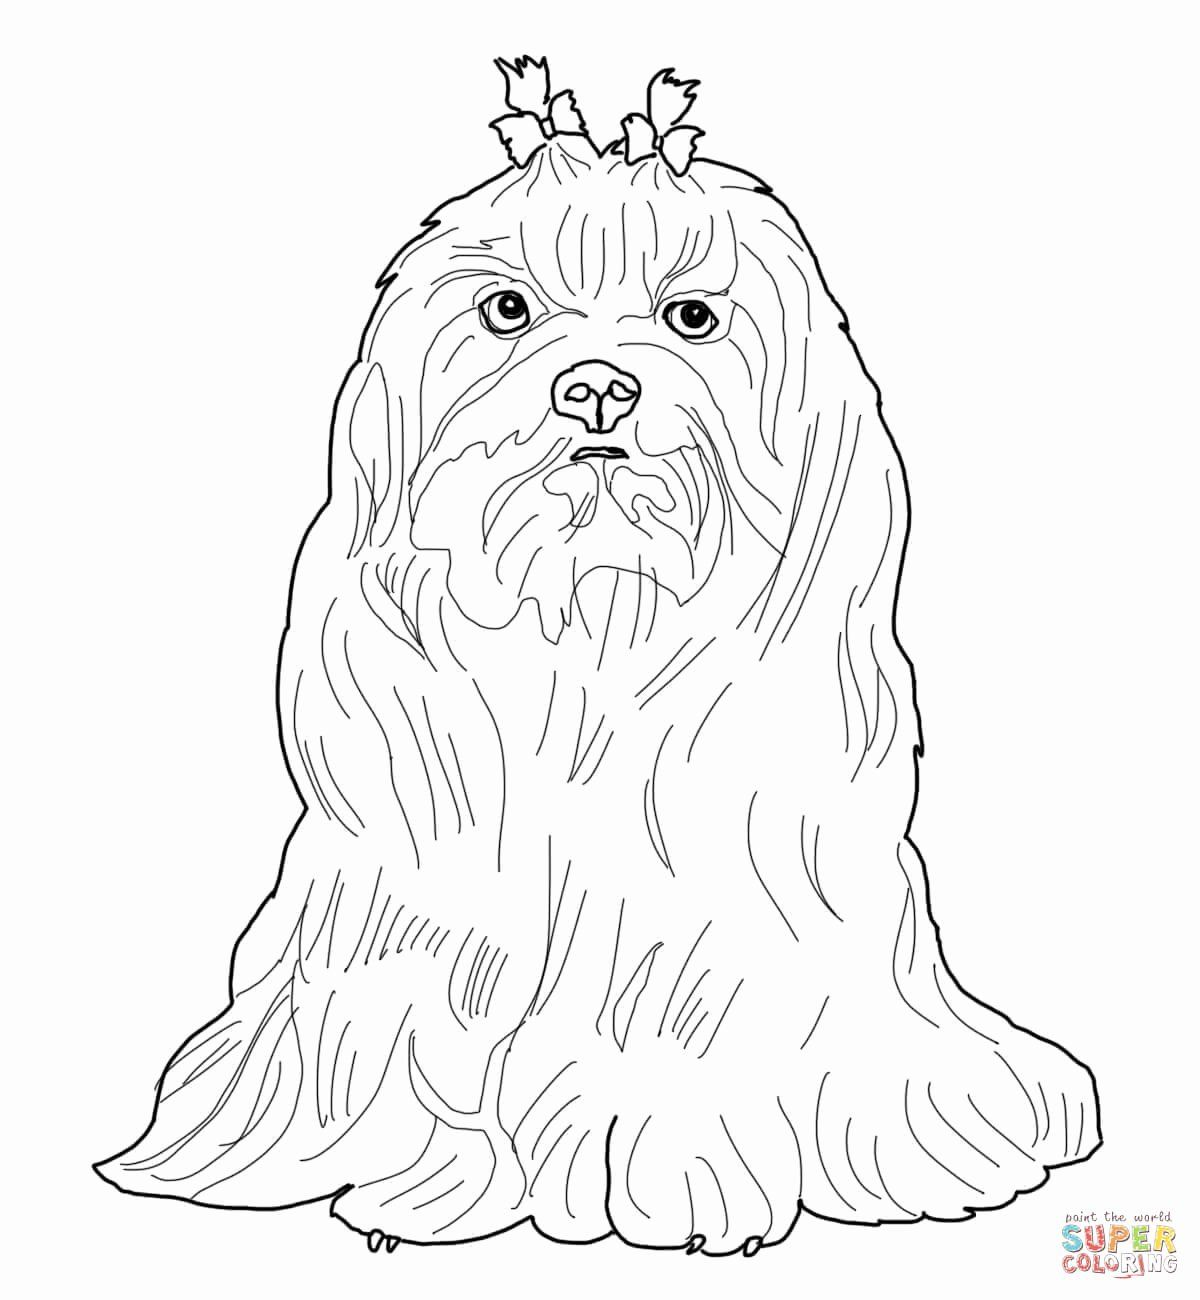 Shih Tzu Coloring Page Best Of Yorkie Shih Tzu Coloring Pages